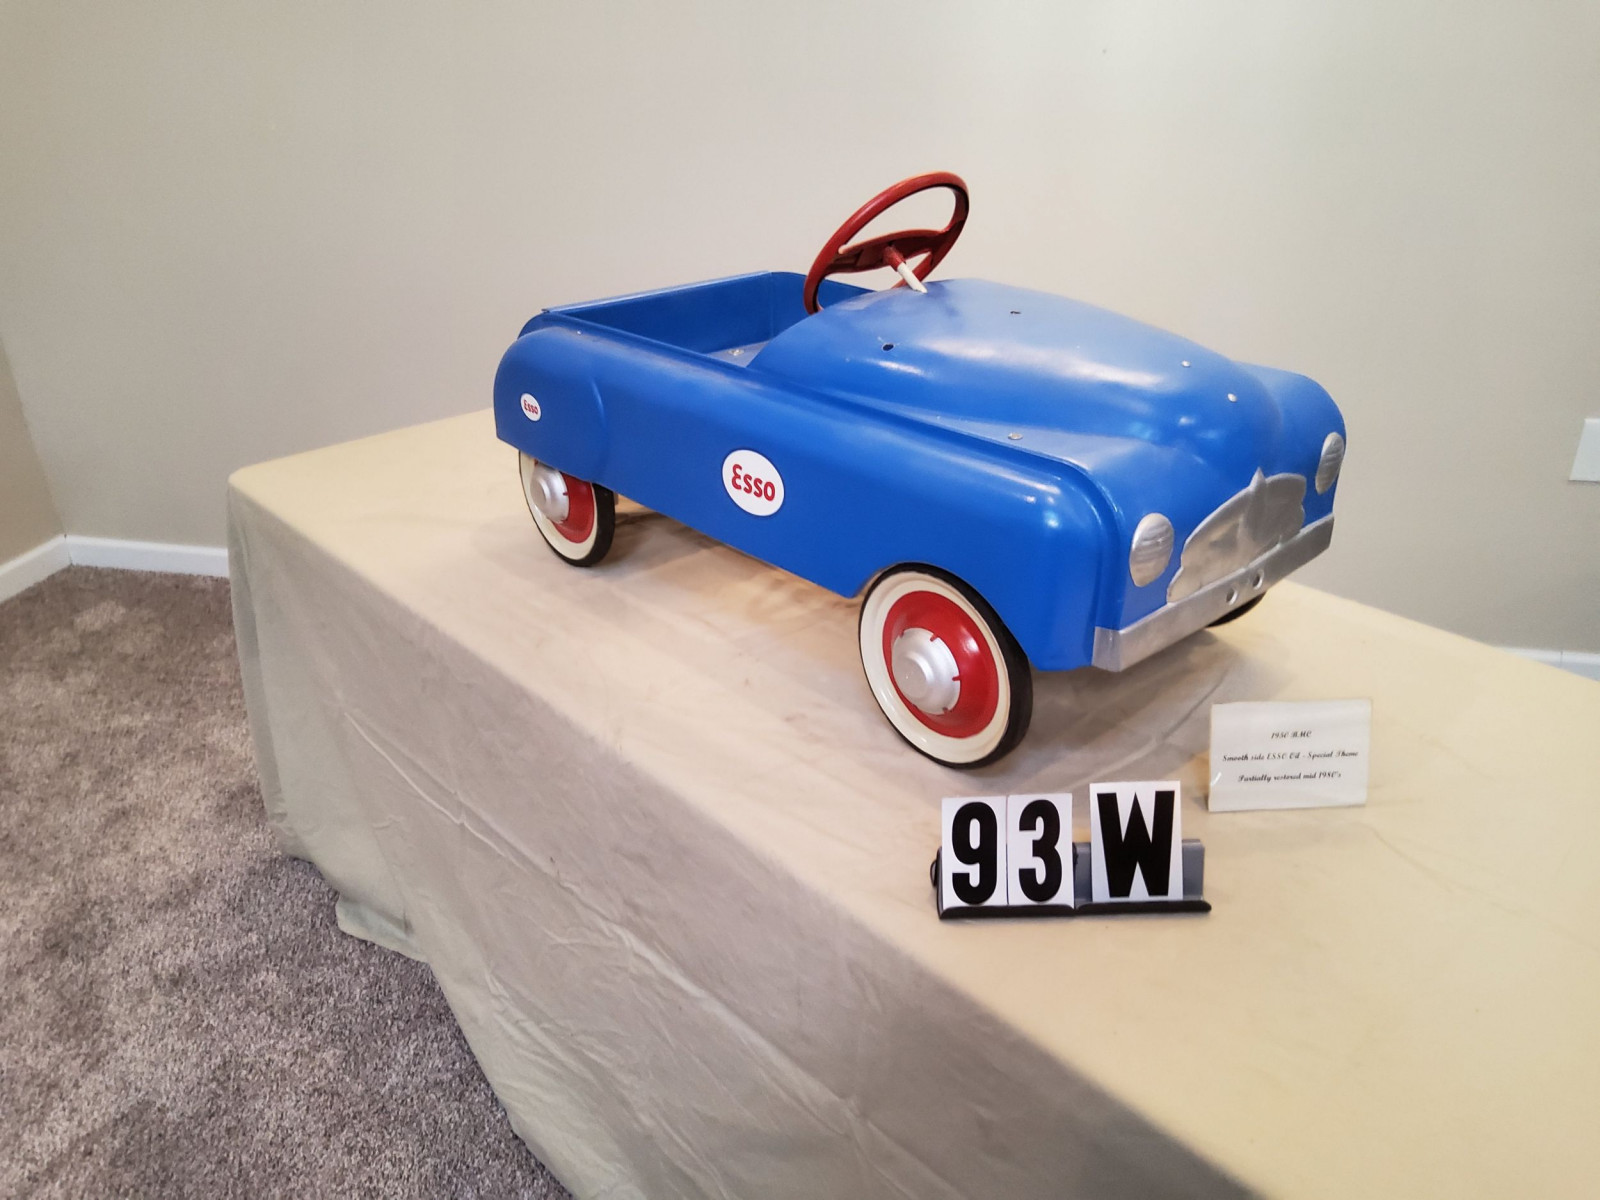 1950 BMC Smooth Side ESSO theme Pedal Car - Image 1